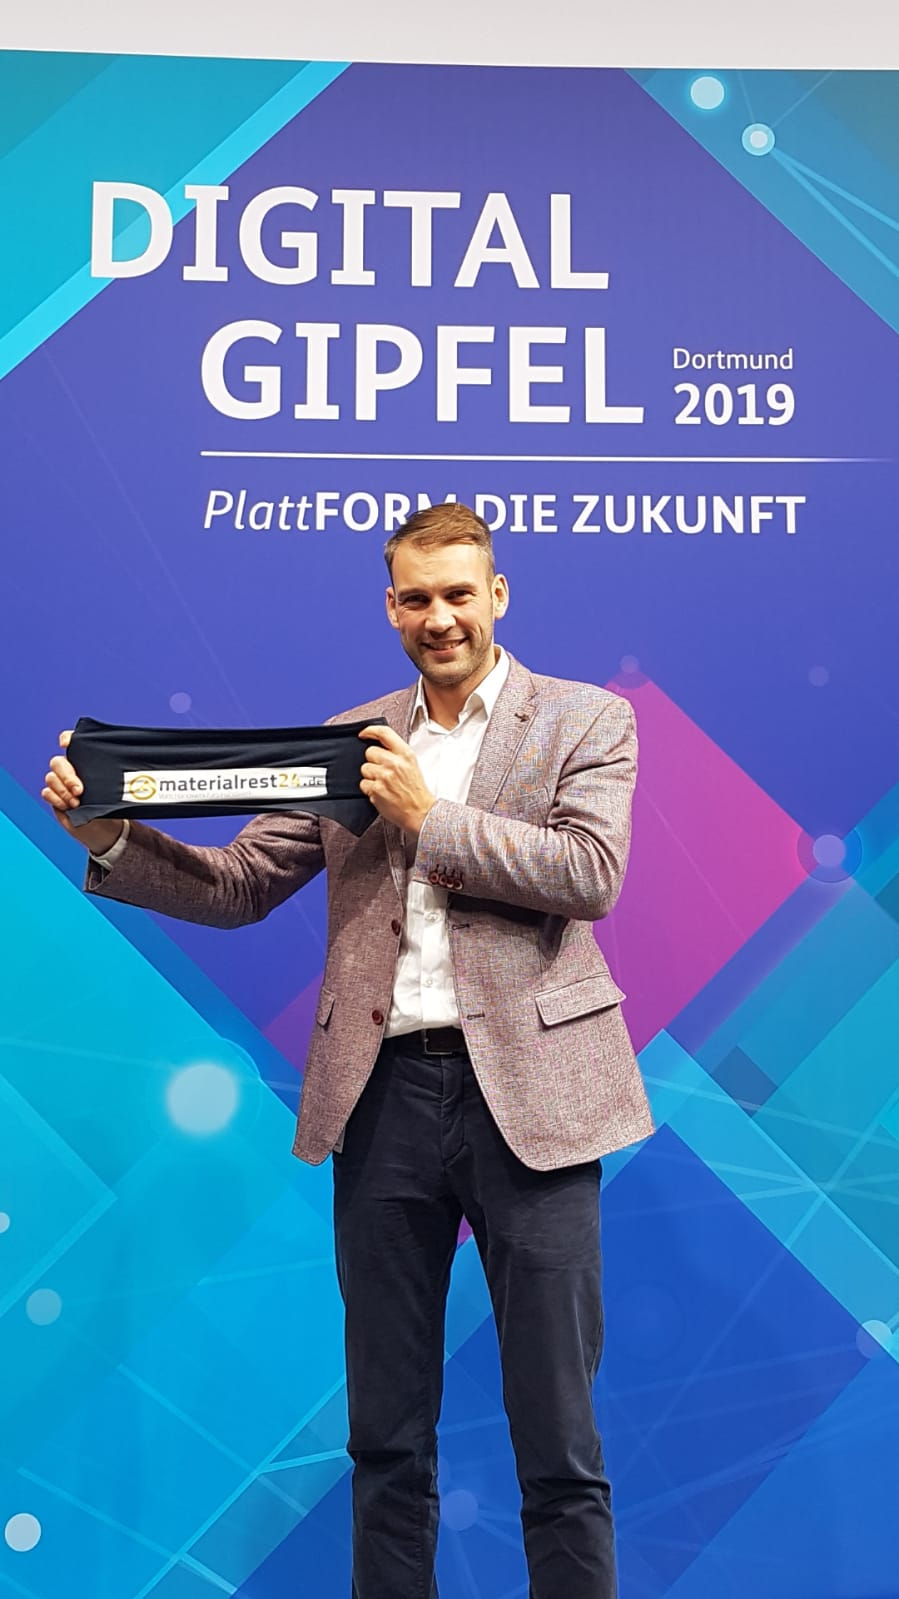 Digitalgipfel 2019 (2)